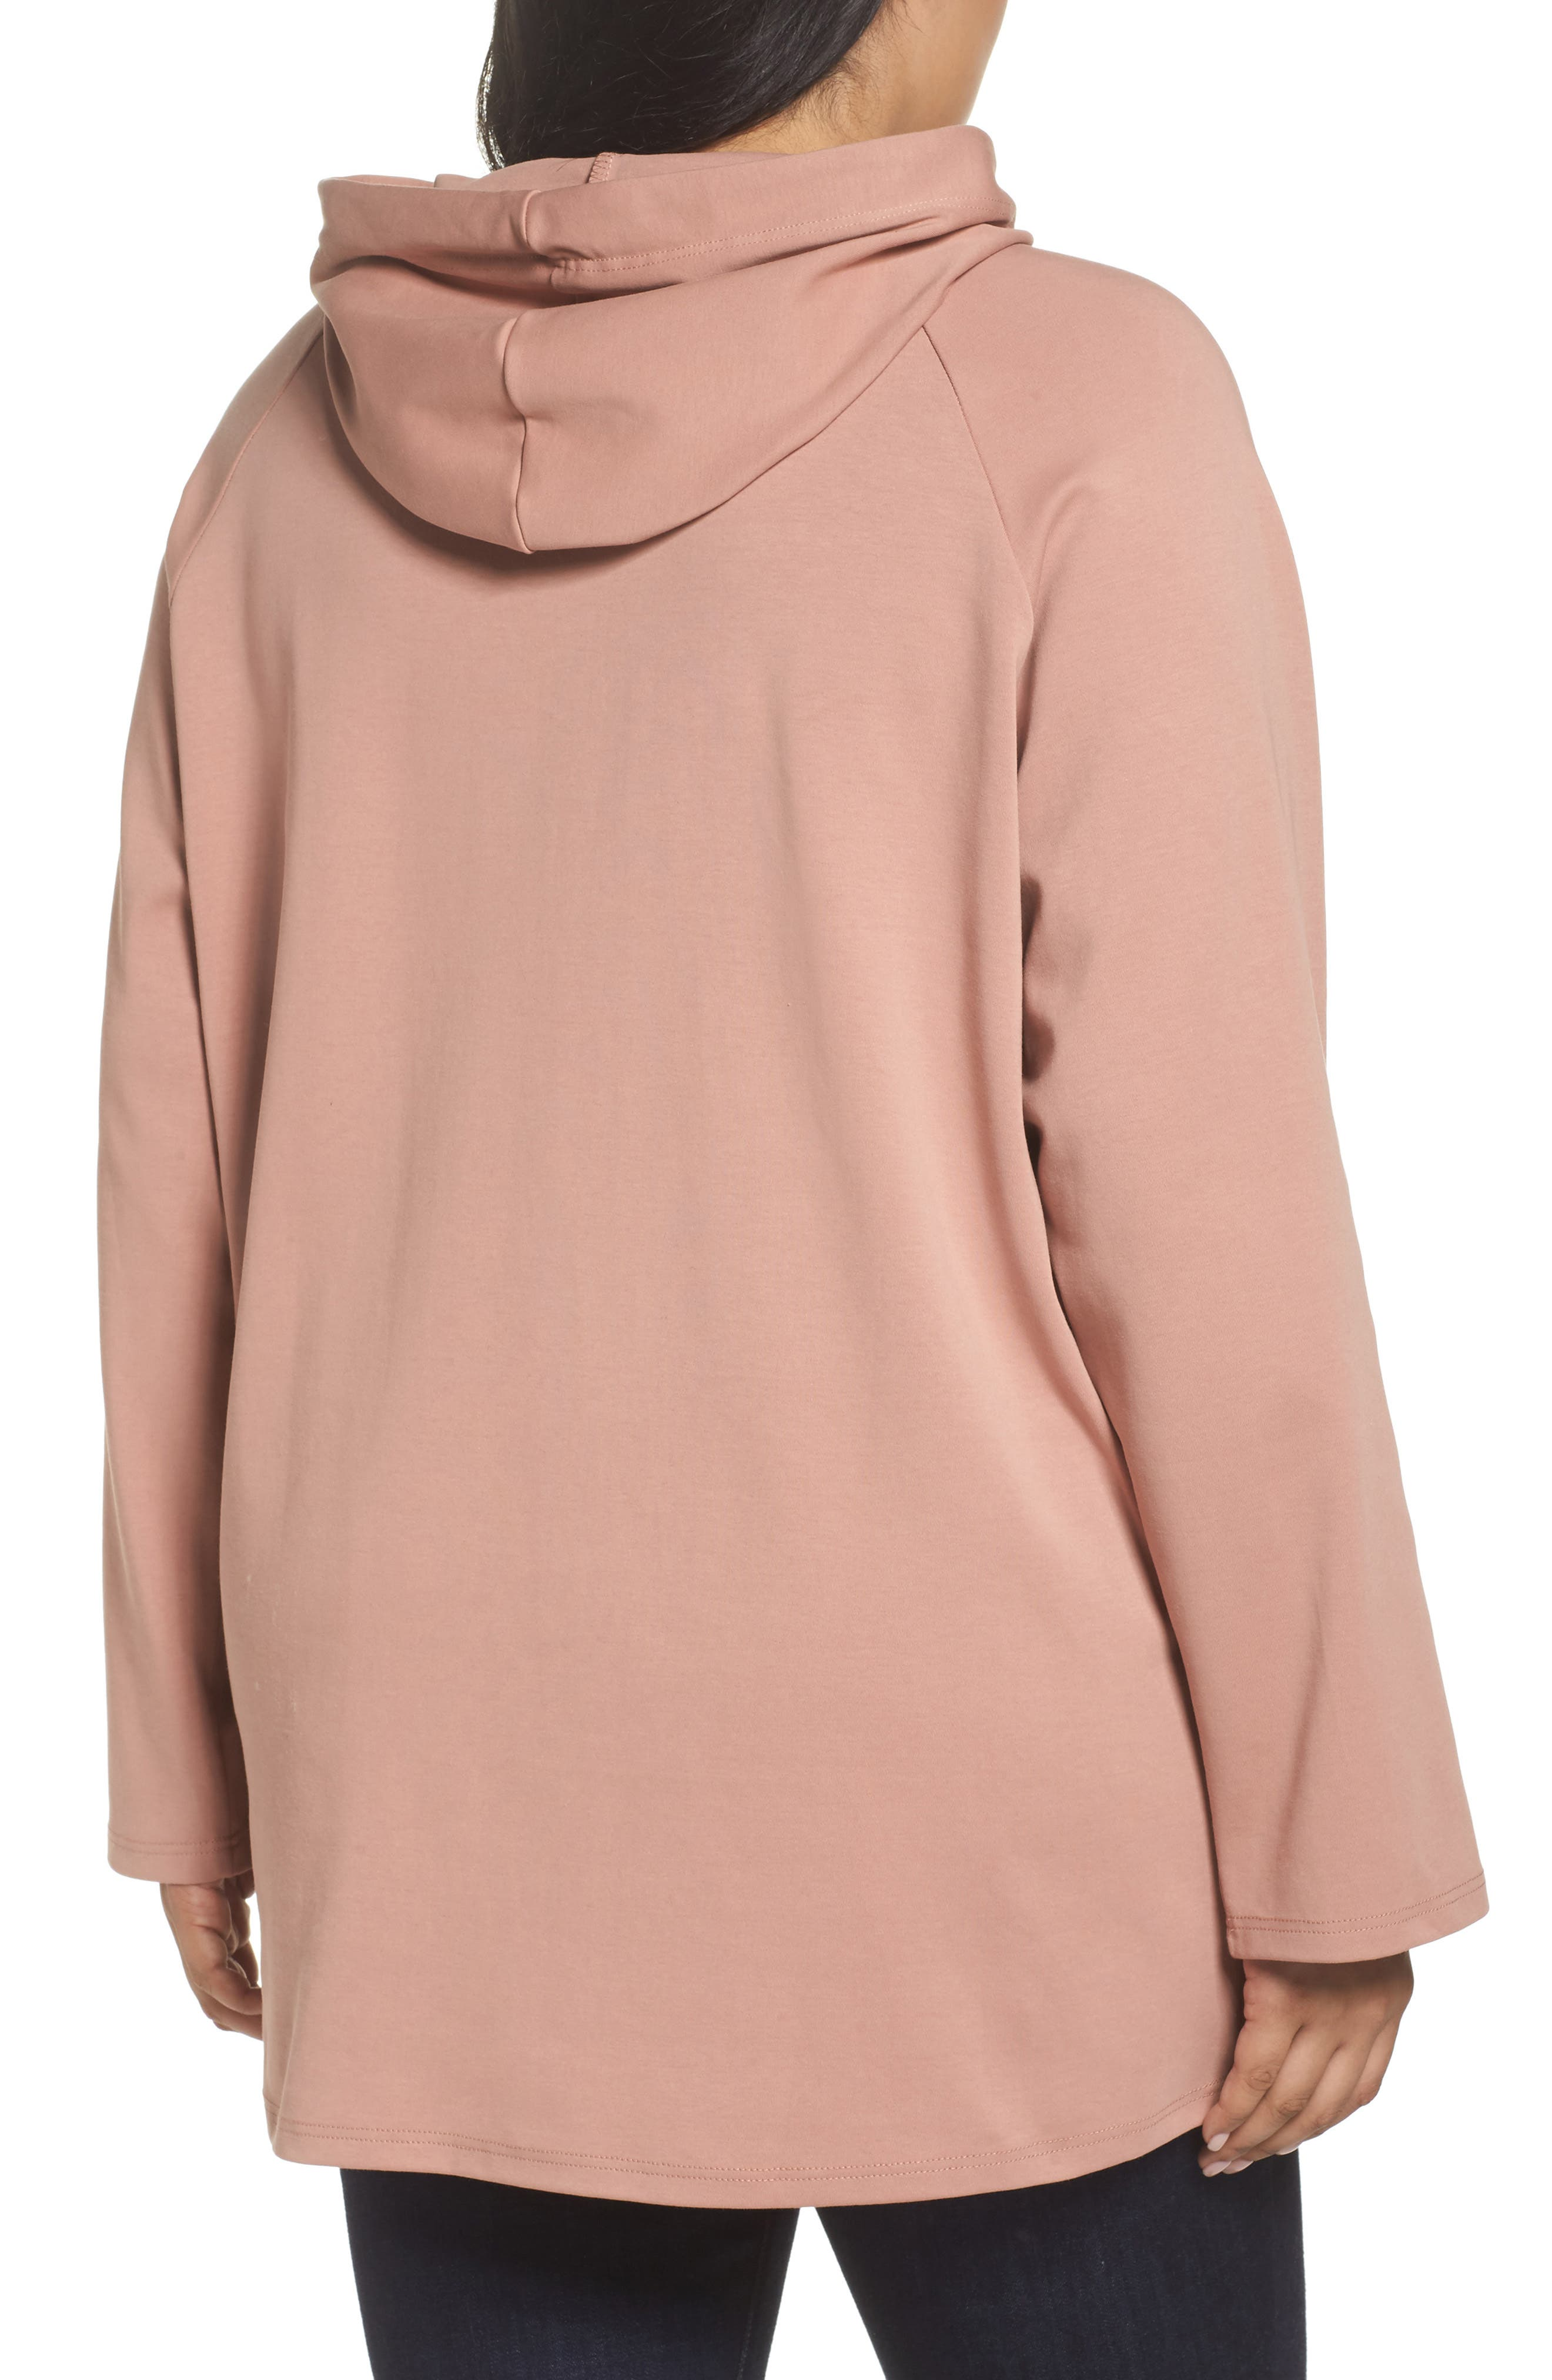 Hoodie Tunic,                             Alternate thumbnail 2, color,                             Dusty Rose